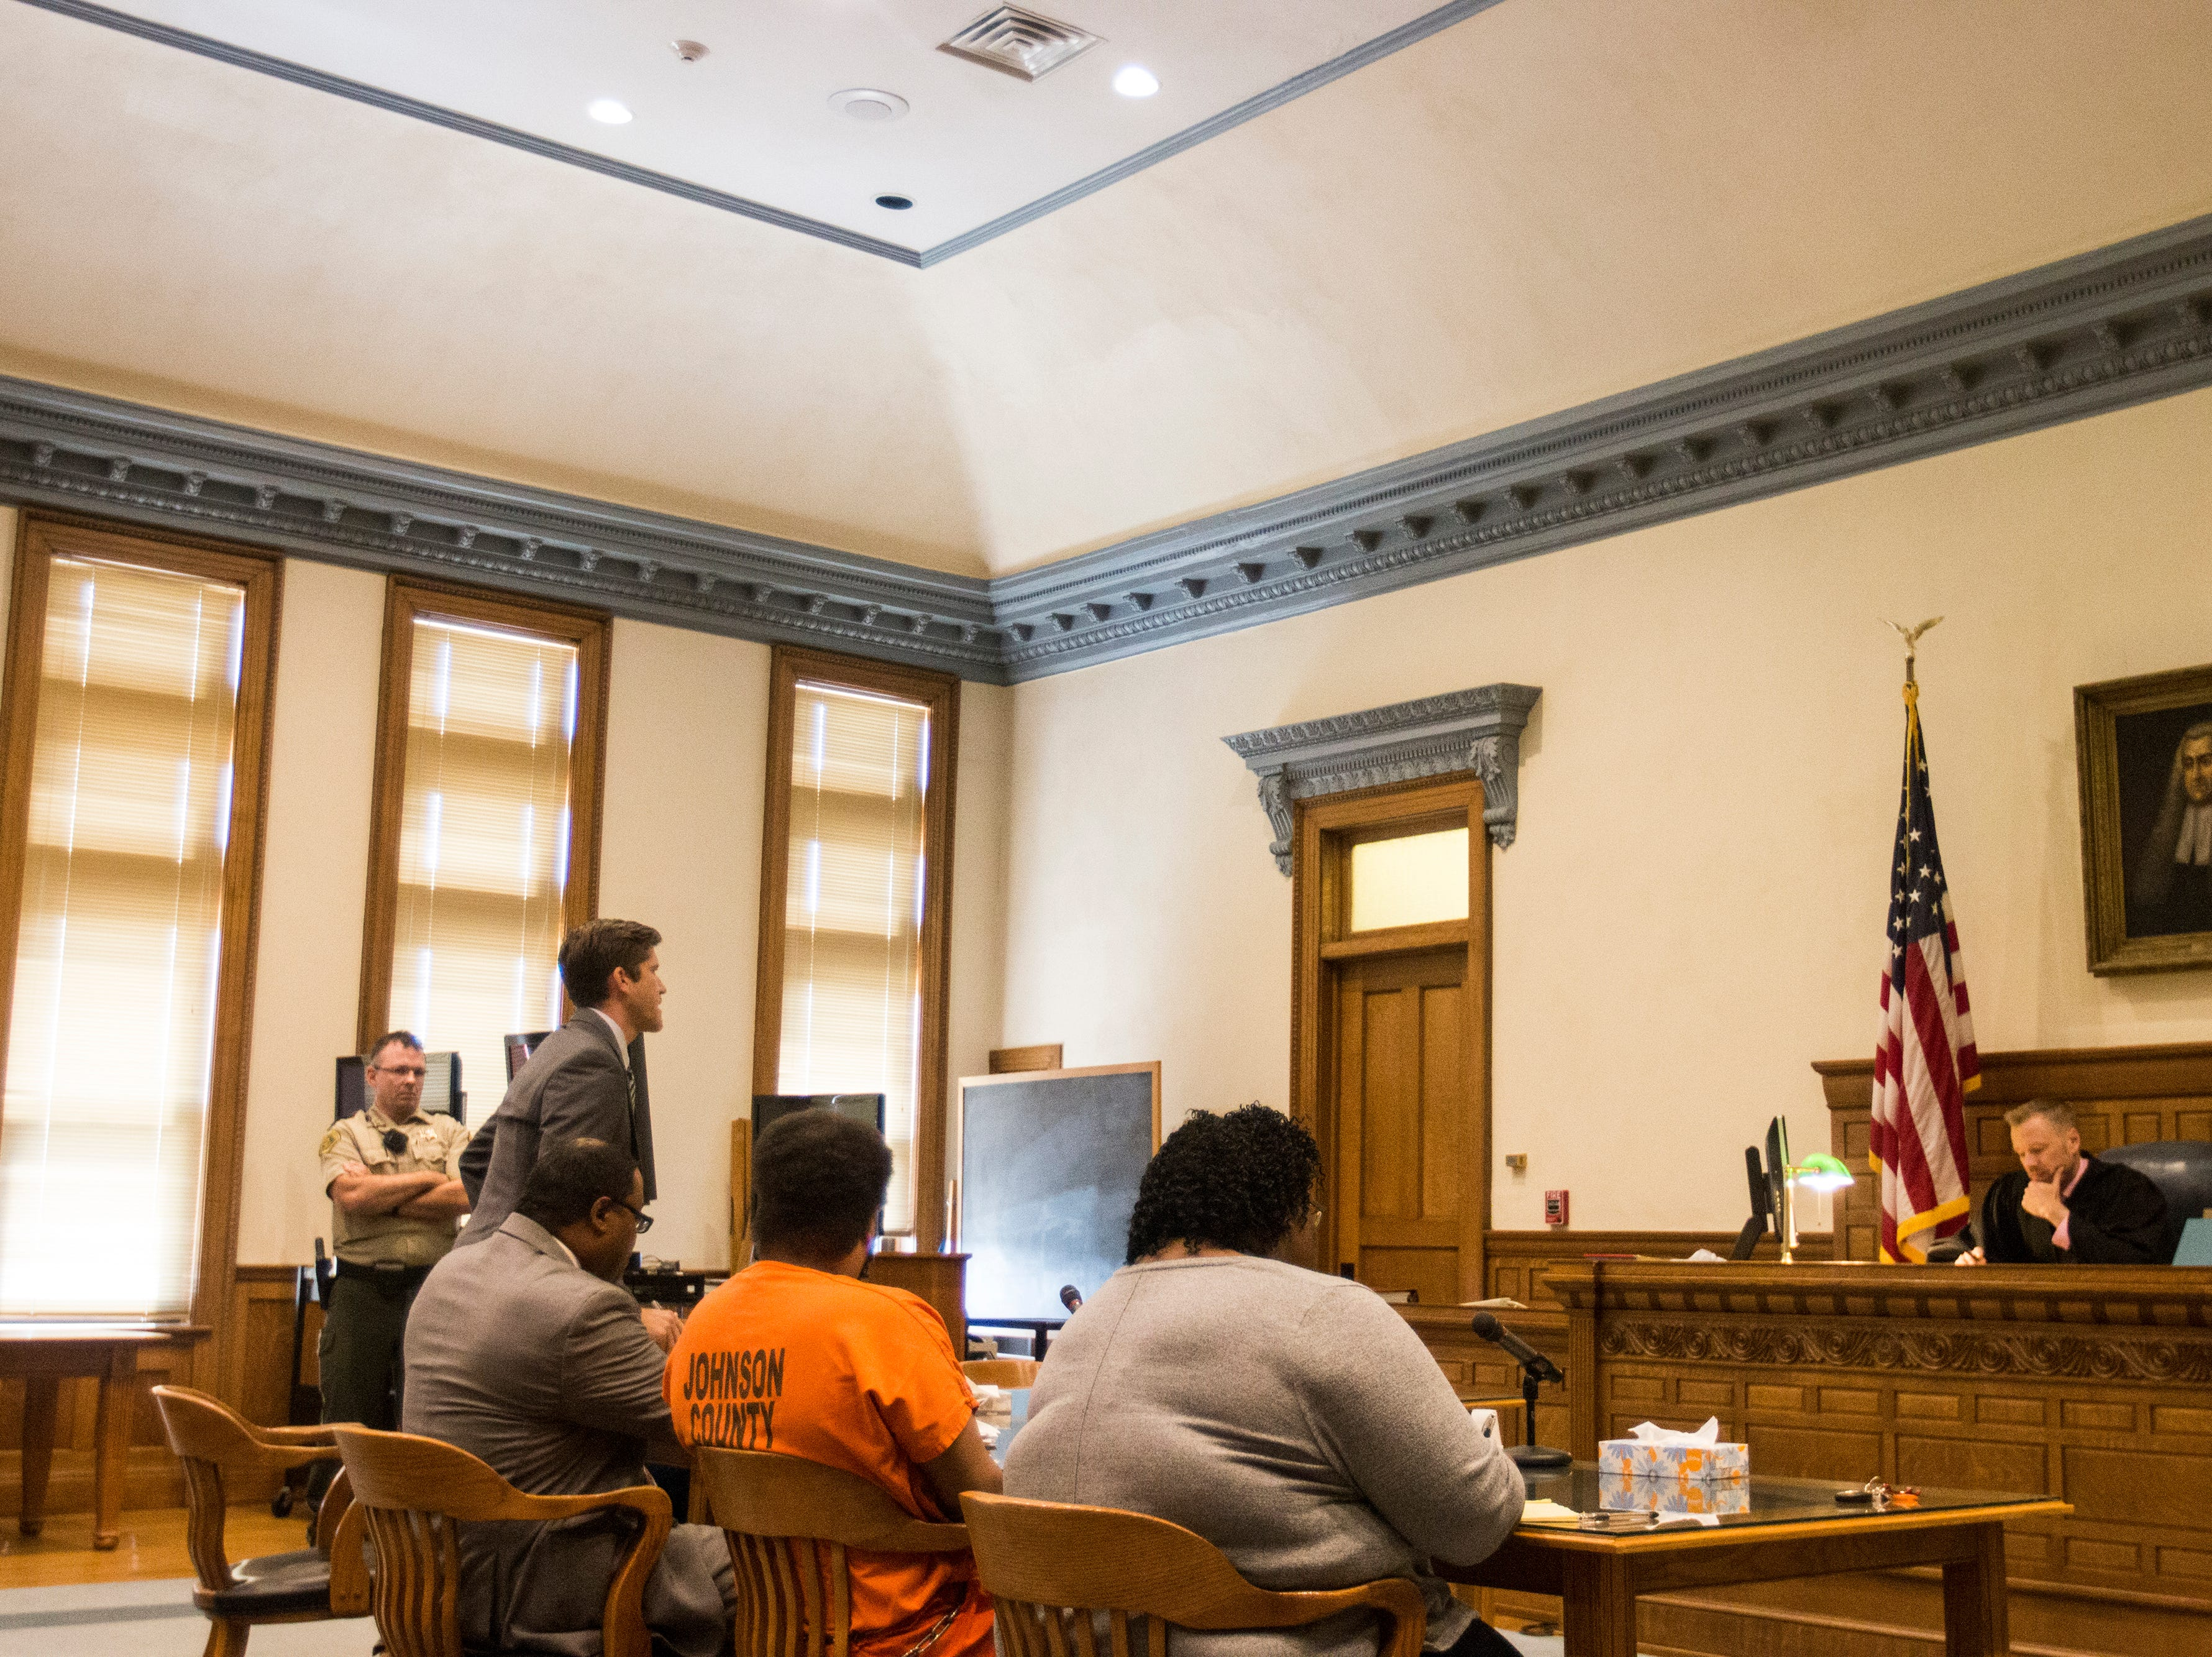 Mike Ringle, assistant Johnson County attorney, stands to speak during a pre-trial hearing for Curtis Jones on Wednesday, Sept. 26, 2018, at the Johnson County Courthouse in Iowa City.